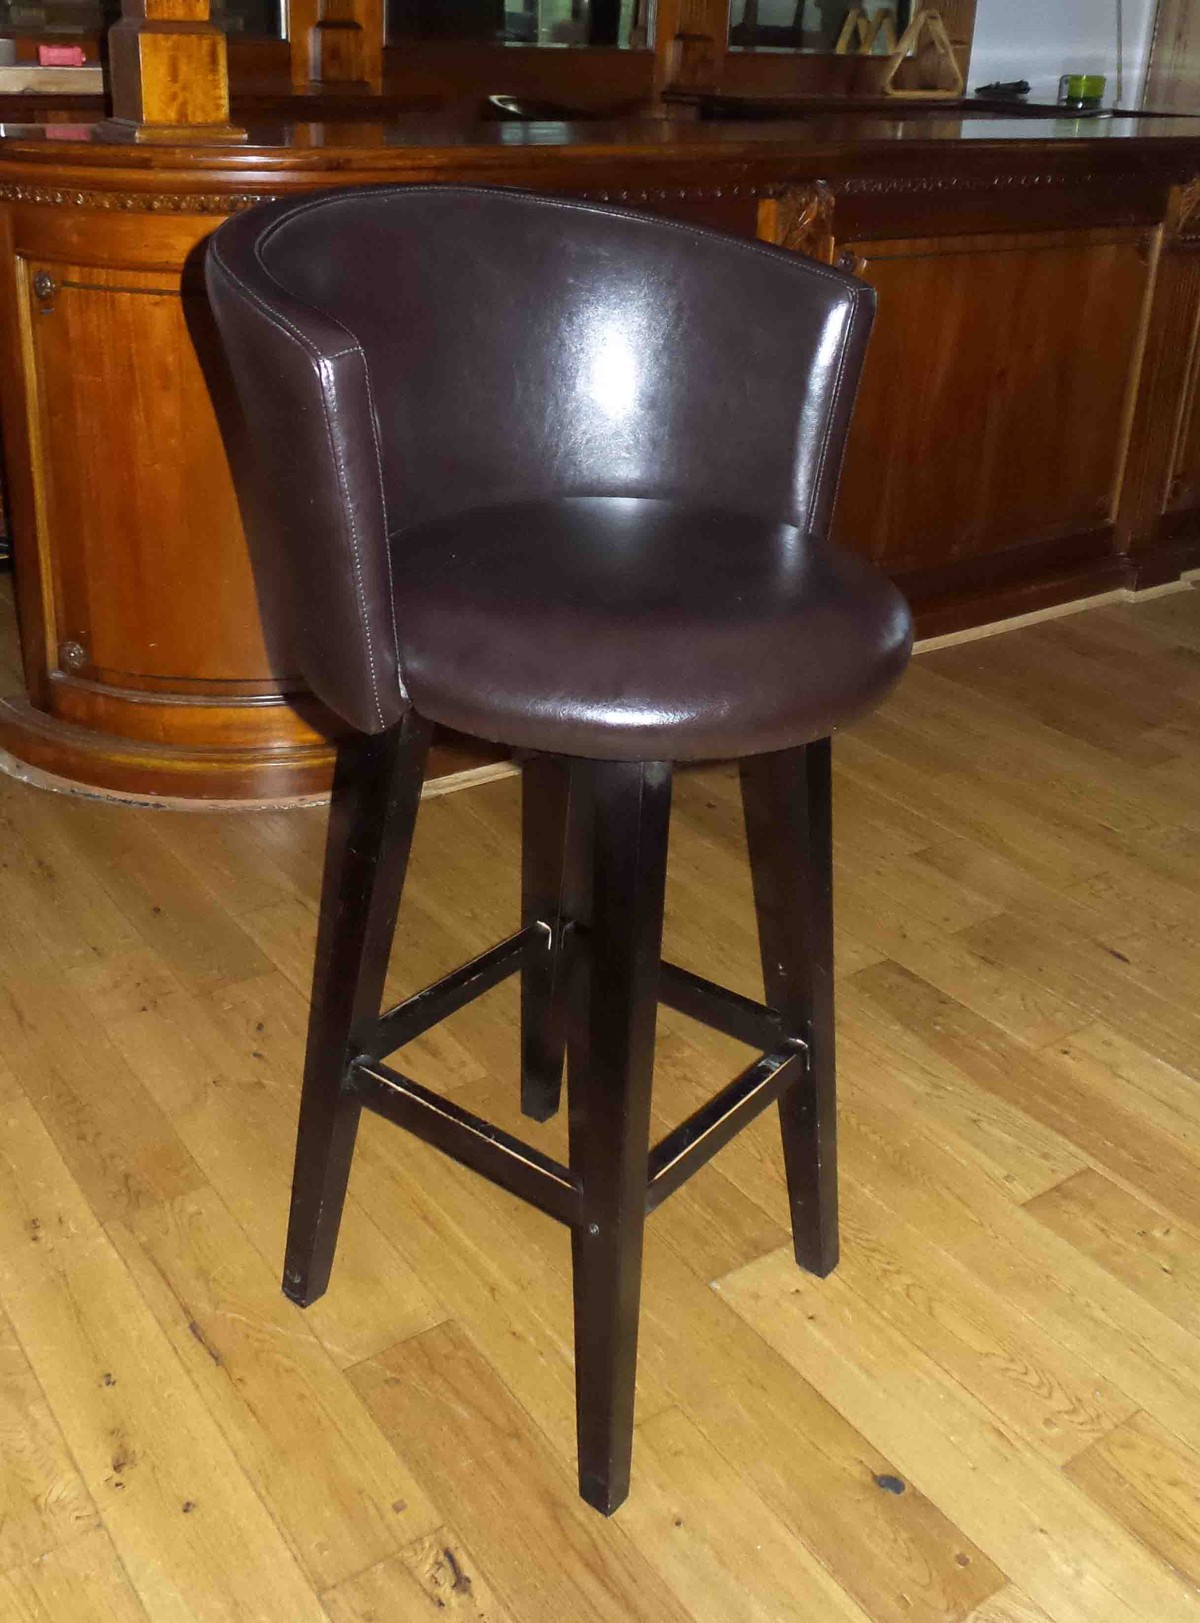 Secondhand pub equipment reclaimed bars bar and stools